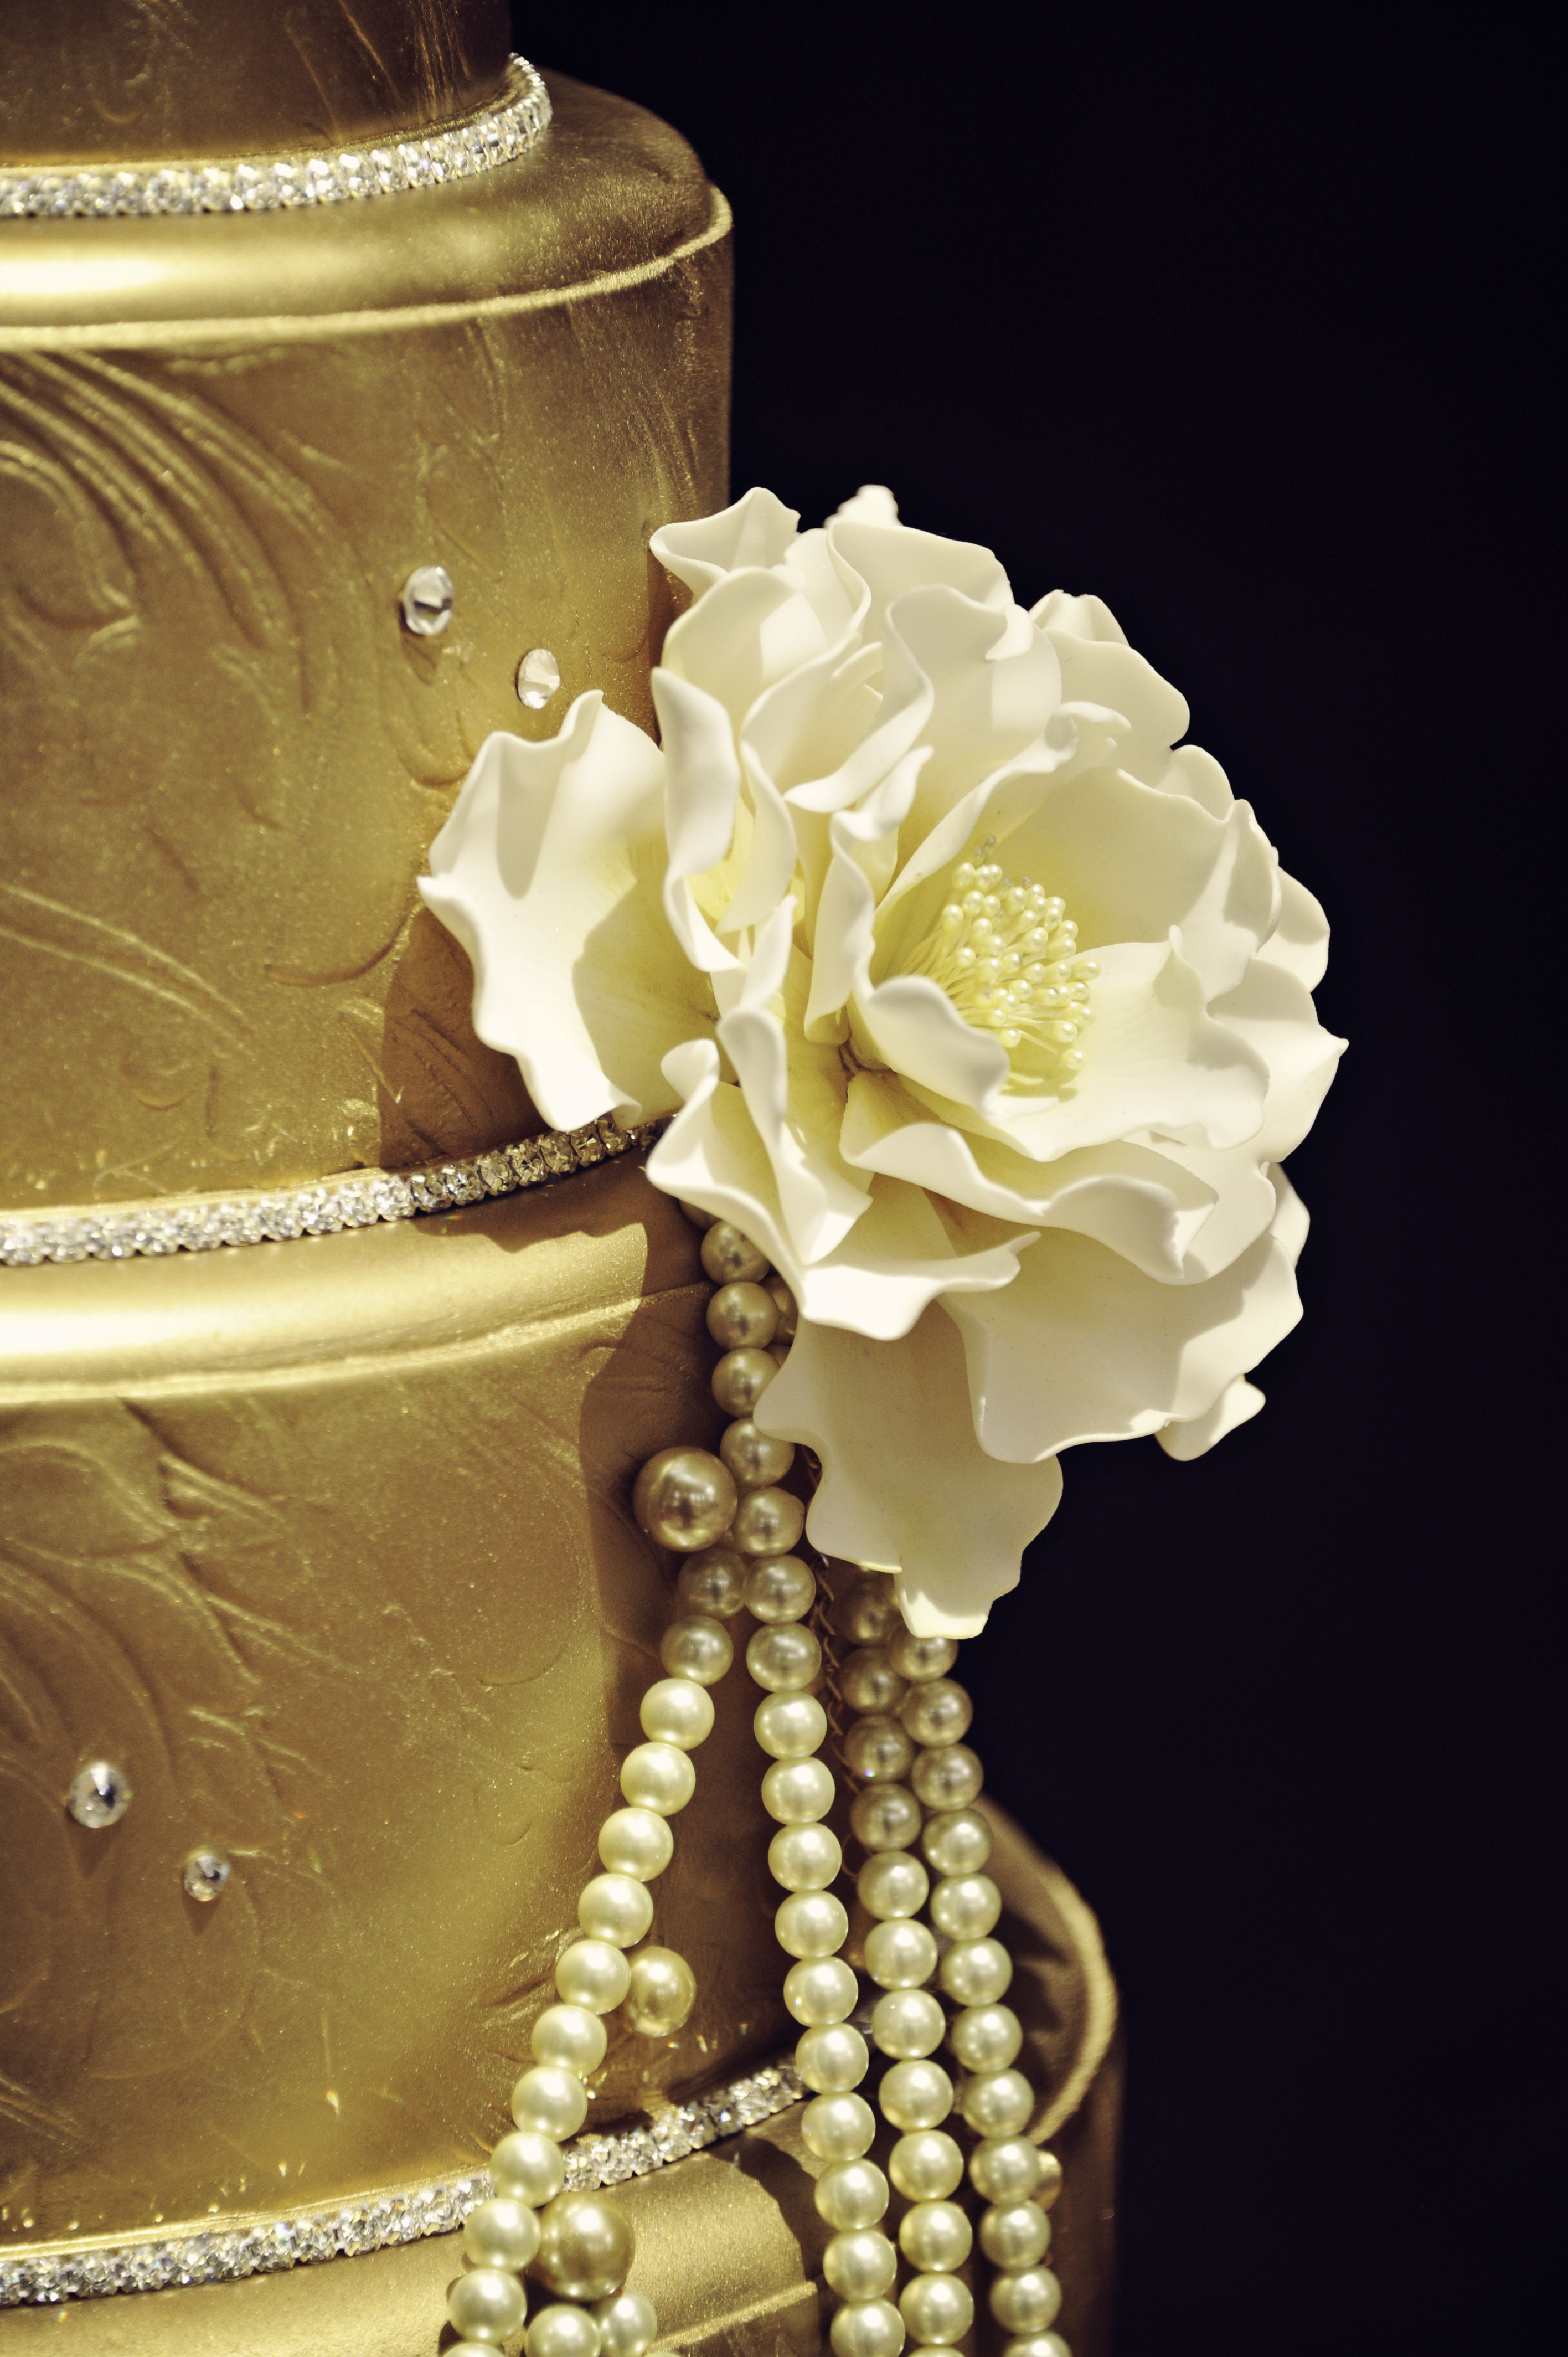 Cake Decorating Gold Pearls : Wedding Cake Detail Shot Gold Pearls and Crystals OneWed.com